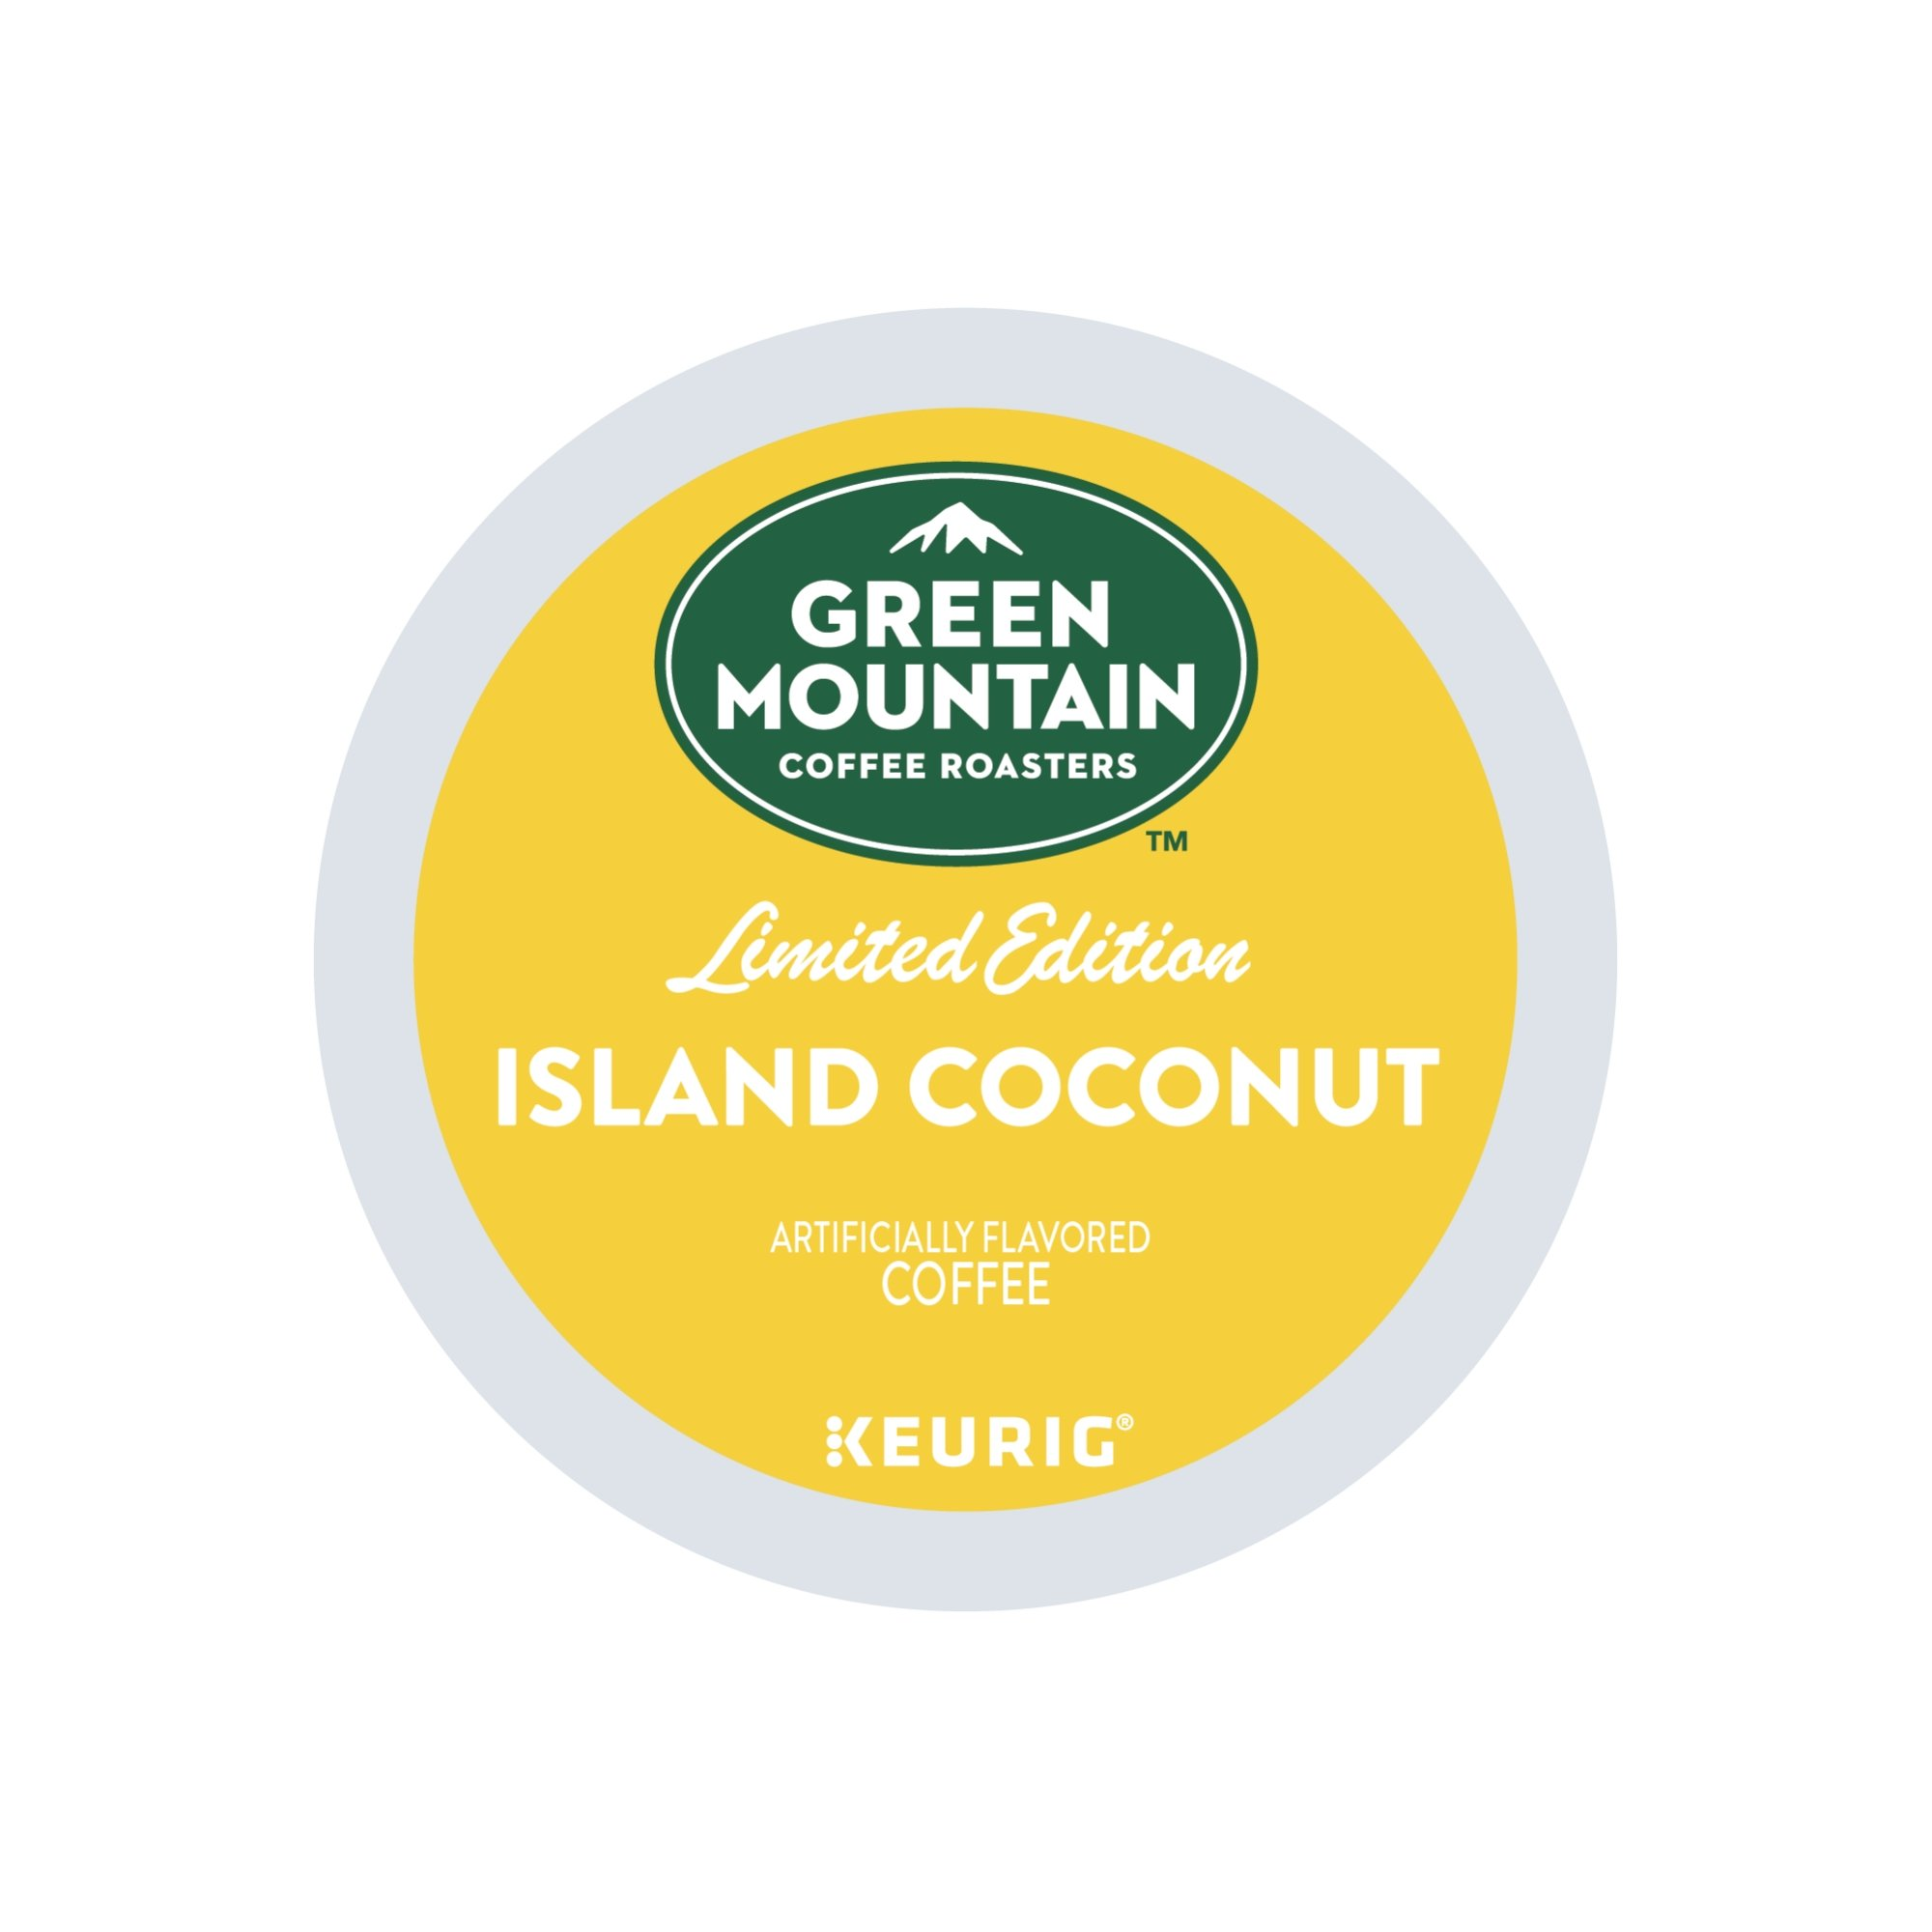 Green Mountain Coffee Roasters, Island Coconut, Limited Edition Keurig Single-Serve K-Cup Pods, Light Roast, Coconut Flavored Coffee, for use with Keurig Coffee Makers, 24 Count by Green Mountain Coffee (Image #1)